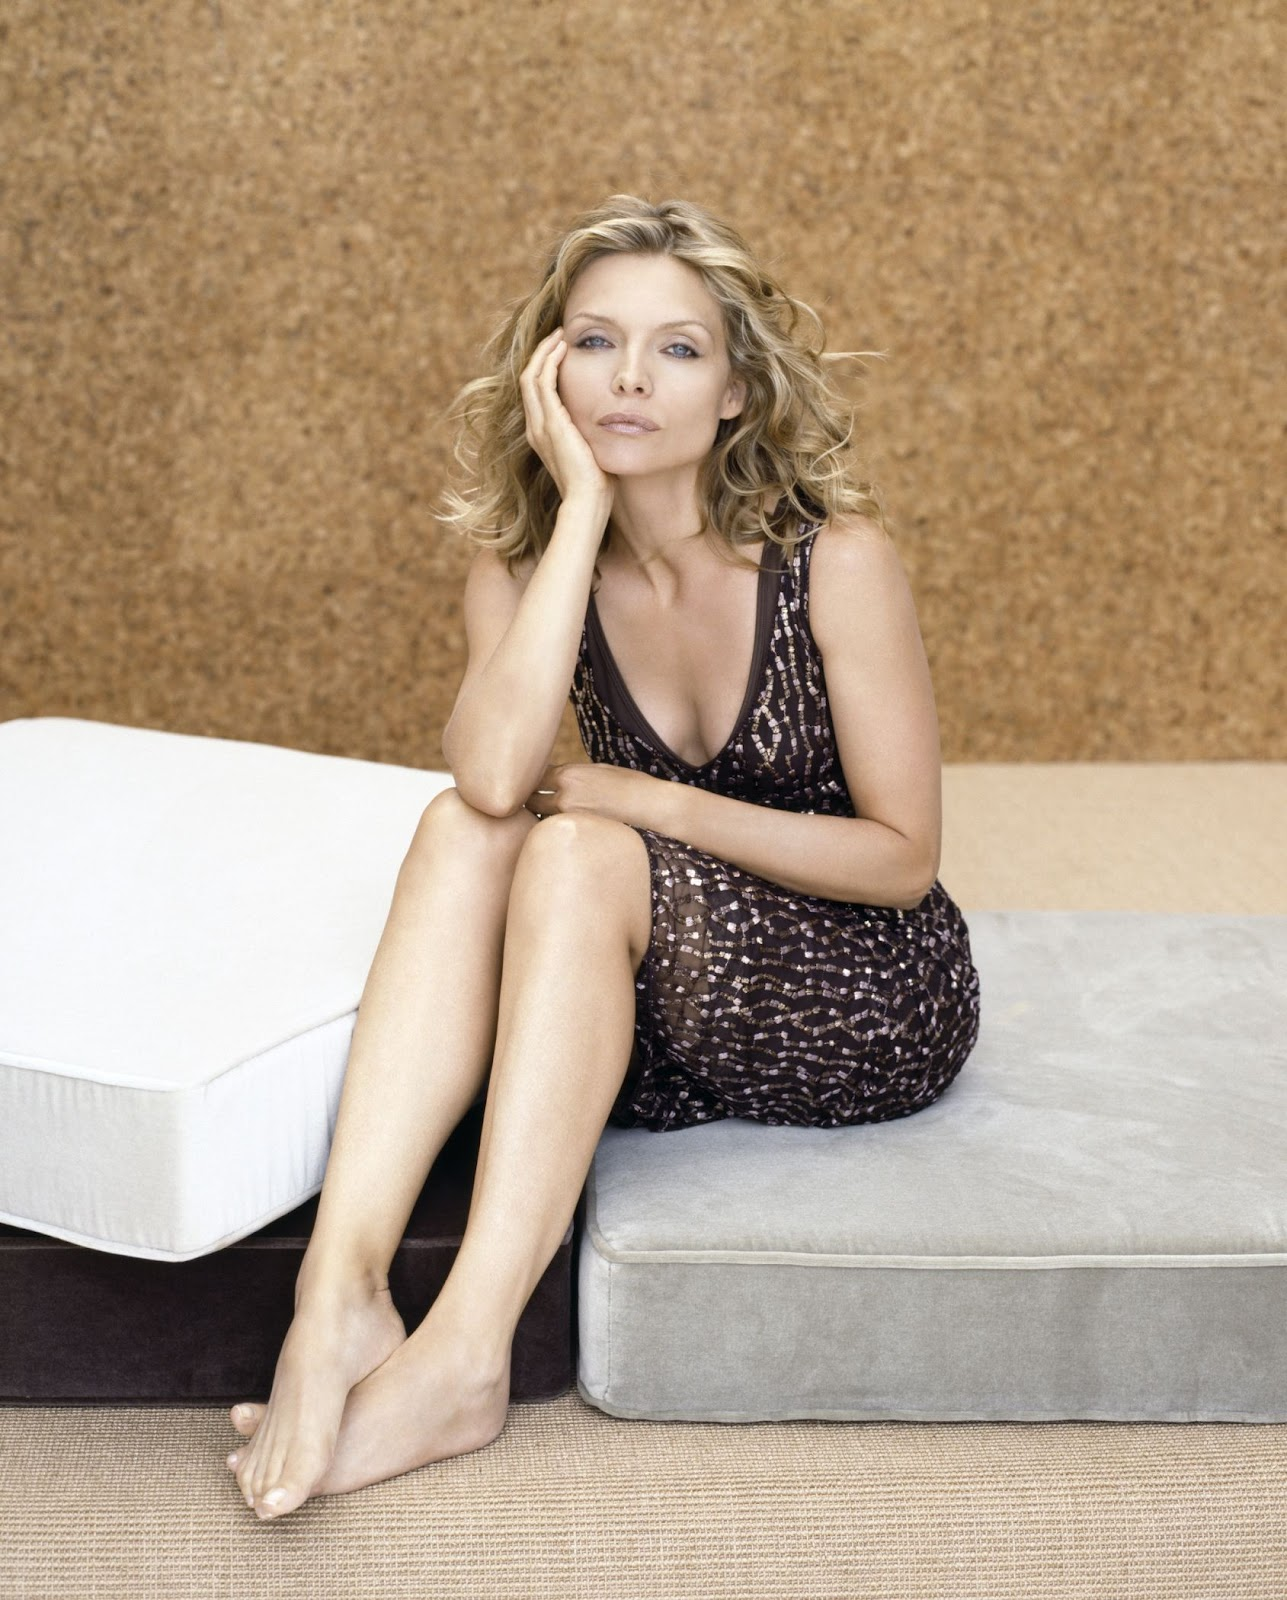 Opinion, Michelle pfeiffer breasts was